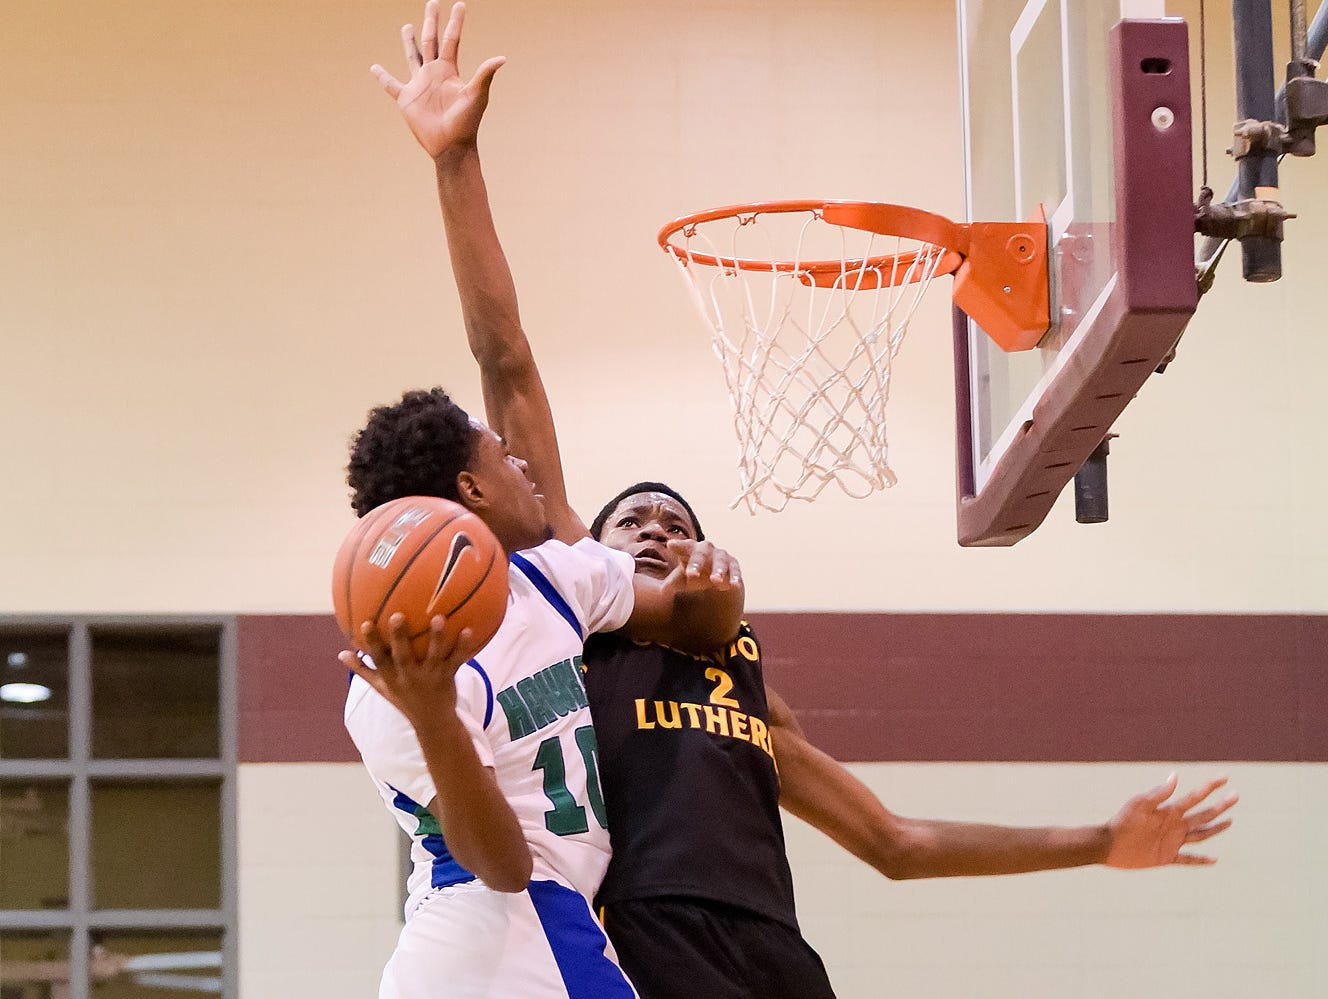 Lamar Hamrick (No. 10) of St. Georges Technical High School takes the ball to the net.